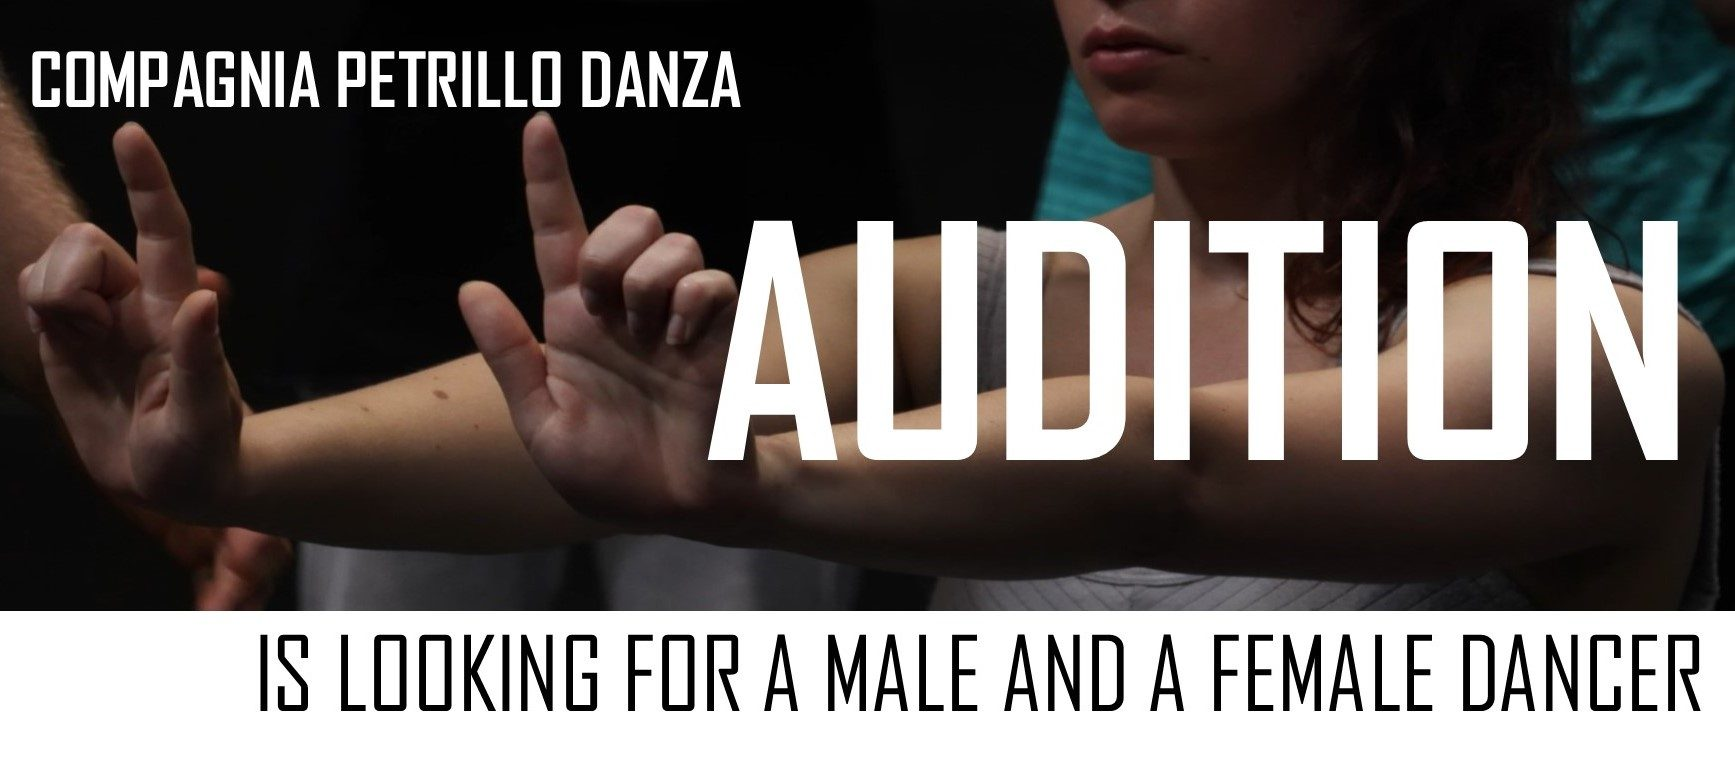 AUDITION FOR MALE AND FEMALE DANCER